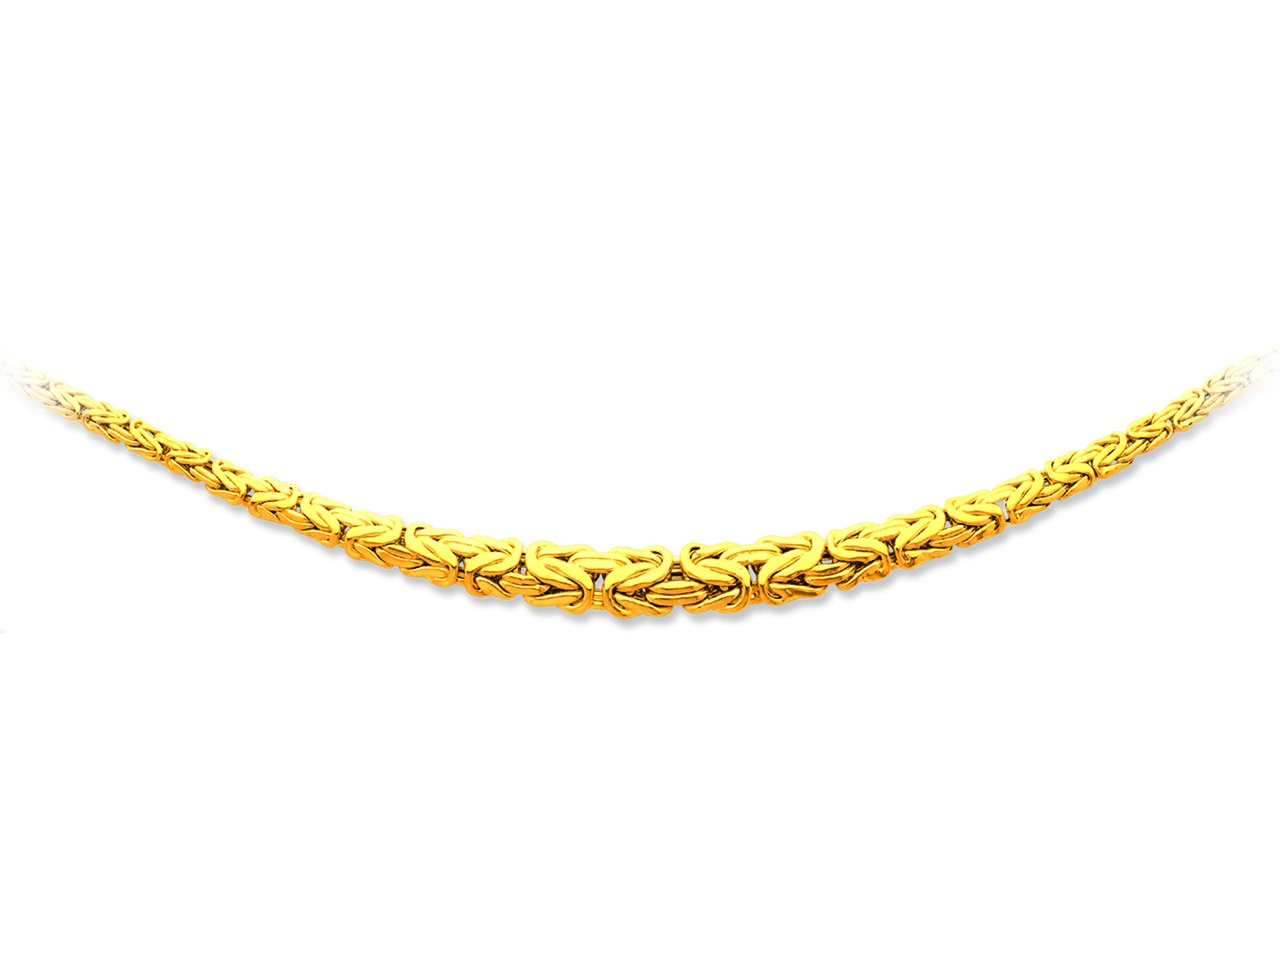 Collier maille royale plate chute, Or jaune 18k, 10 mm, 45 cm